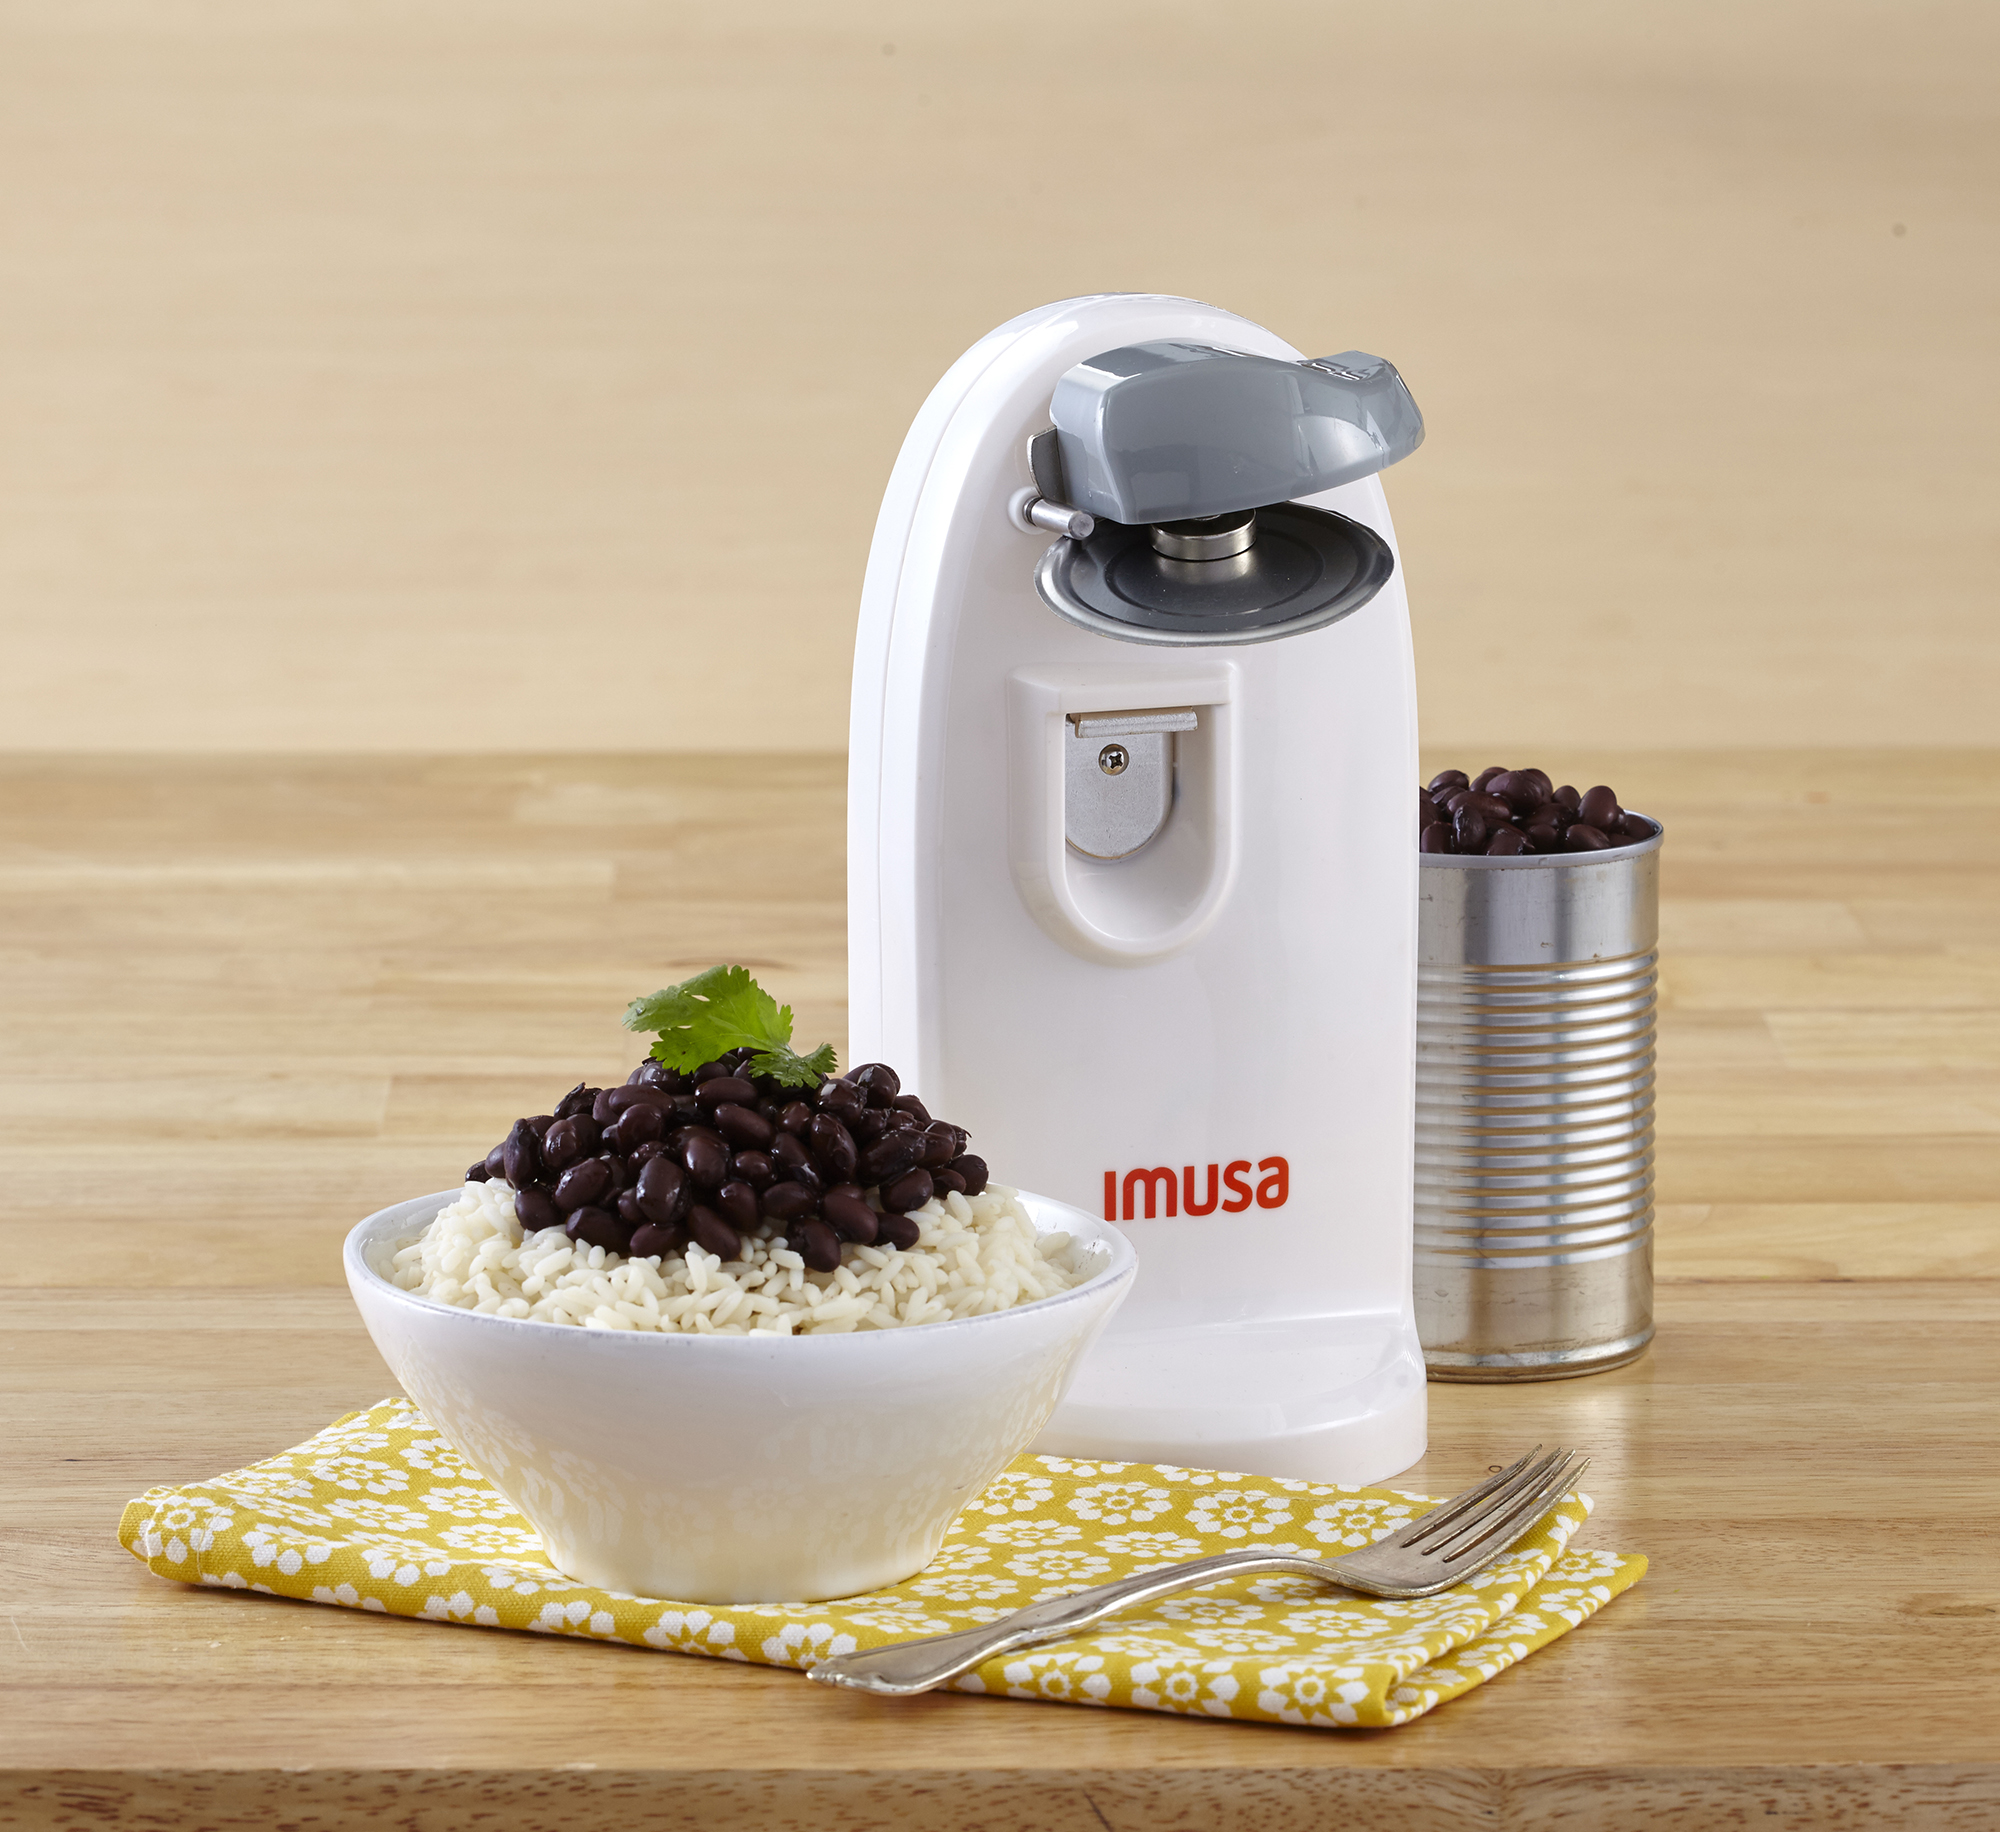 IMUSA Electric 3-in-1 Electric Can Opener 70 Watts, White